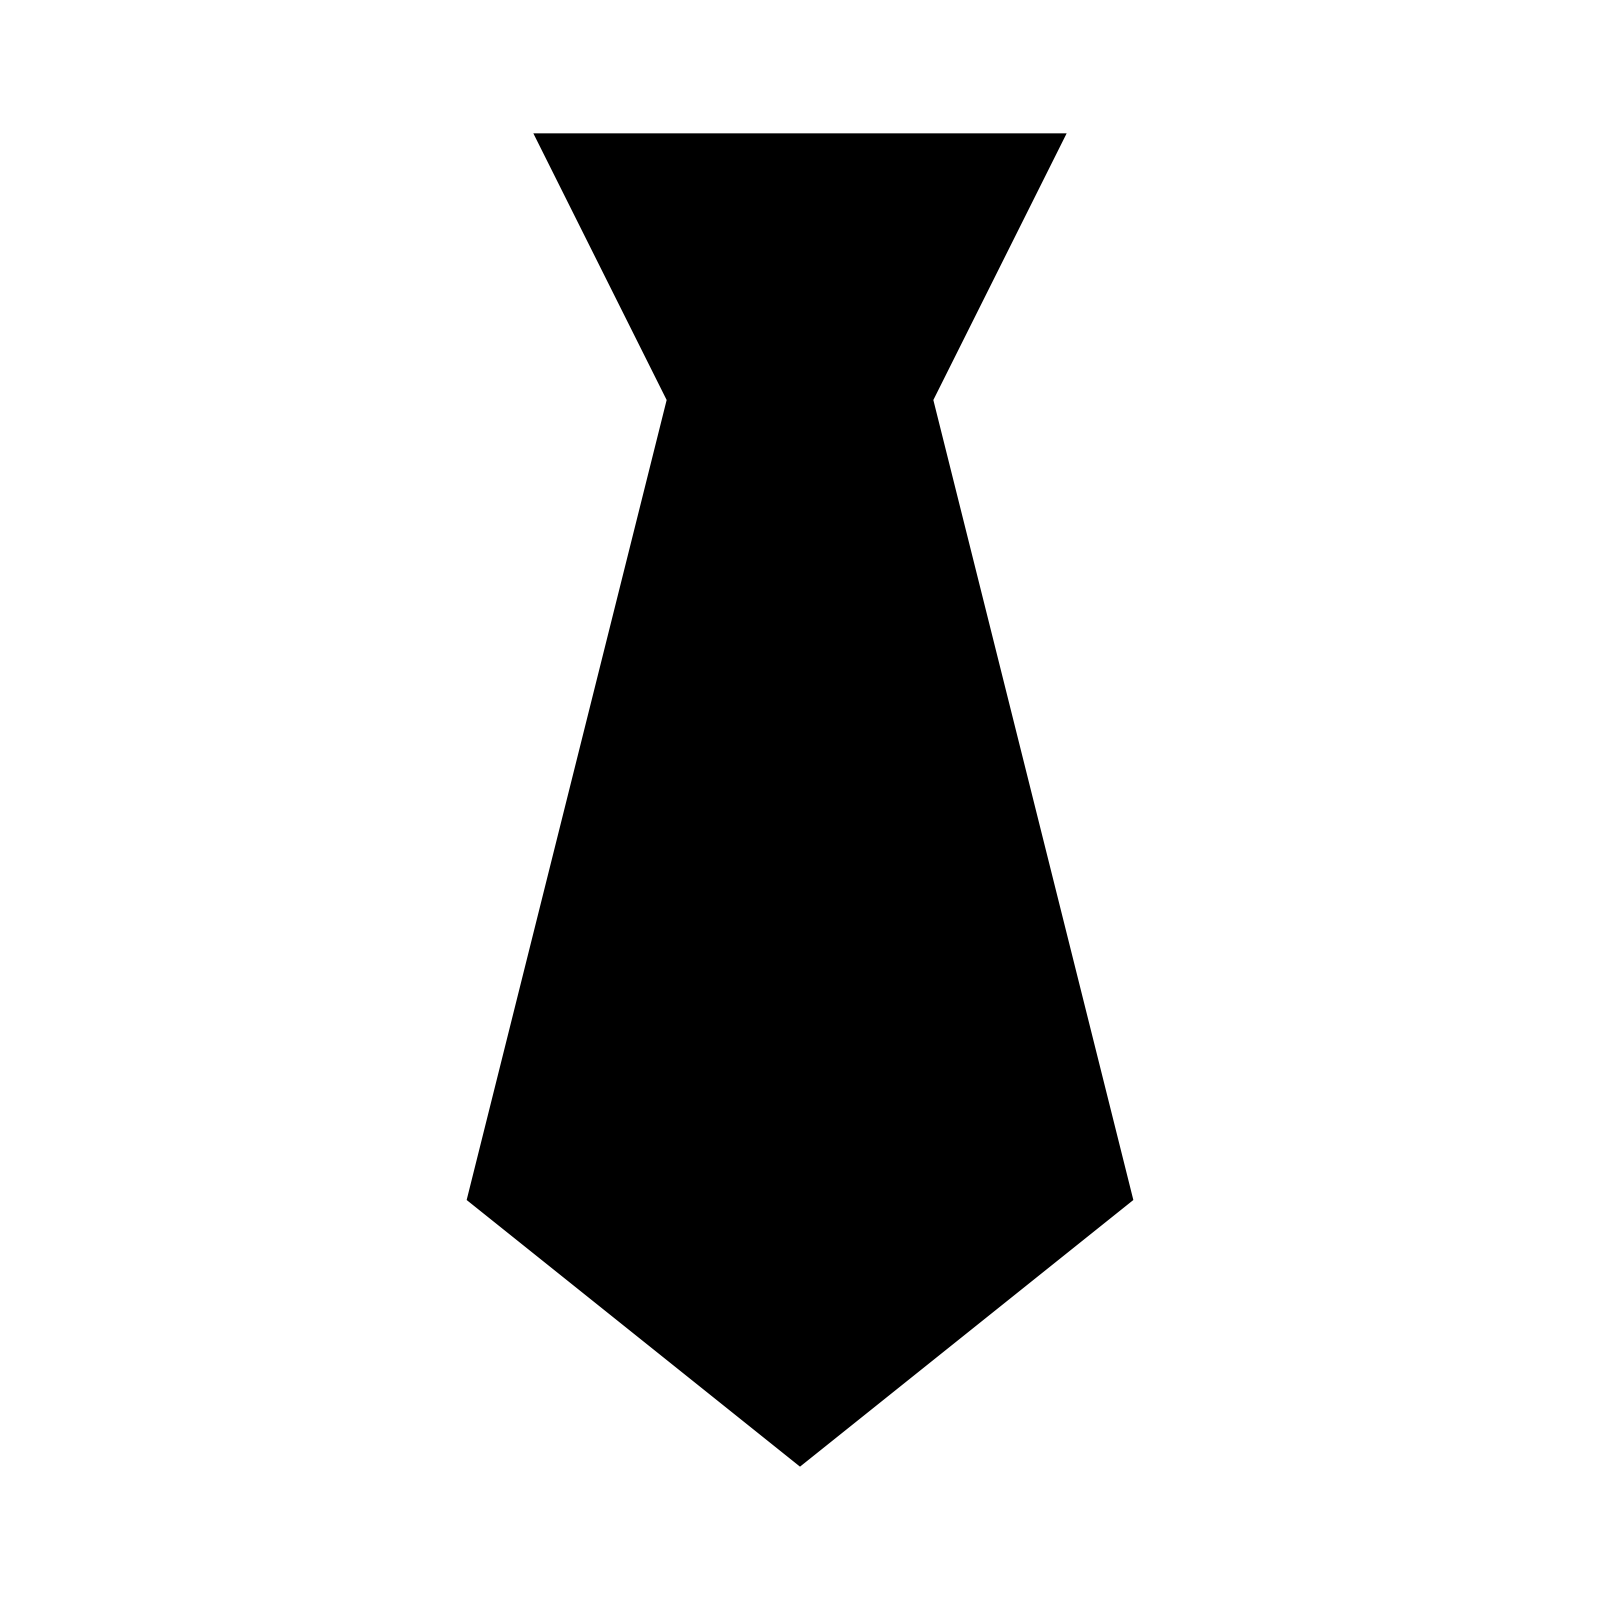 Tie Transparent PNG, All Kinds Of Tie Colors Pictures.